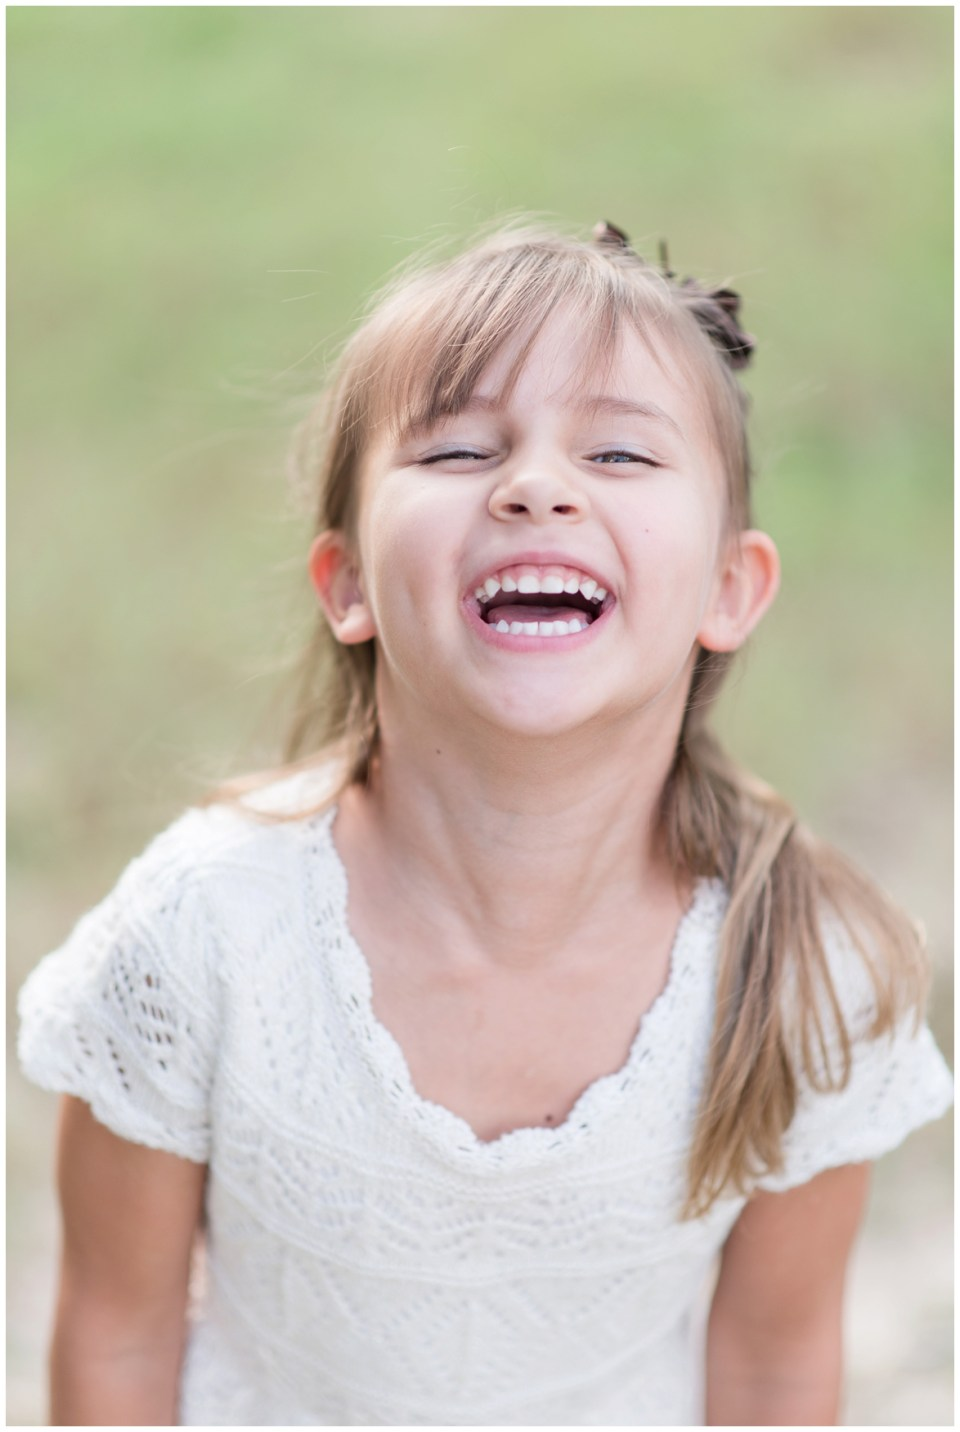 Photos of Kingwood photographer's daughter for 5th birthday